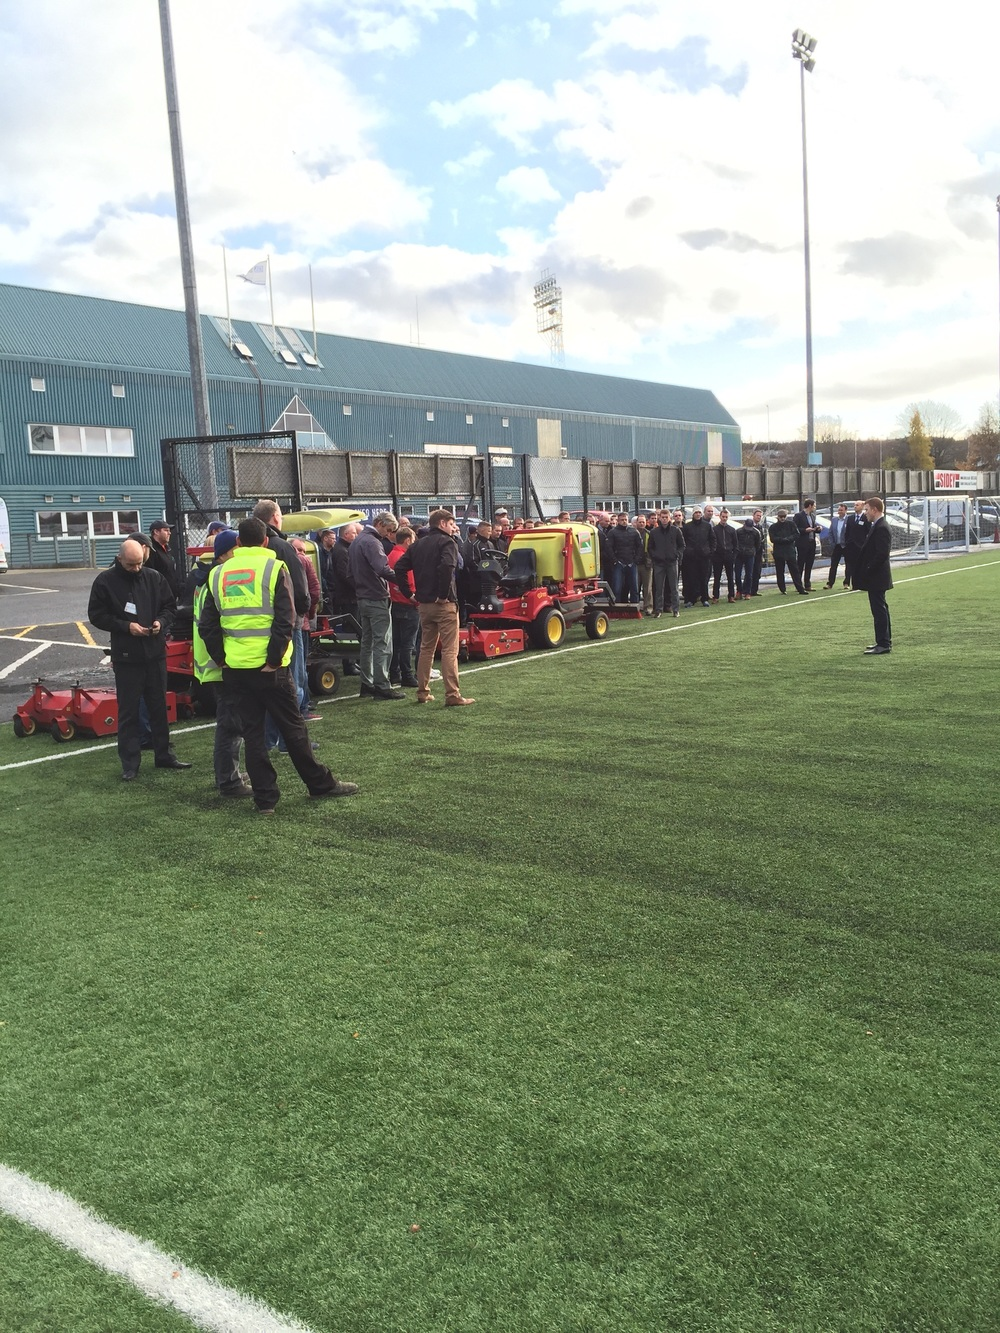 Delegates see a practical demonstration on the 3G pitch at McDiarmid Park